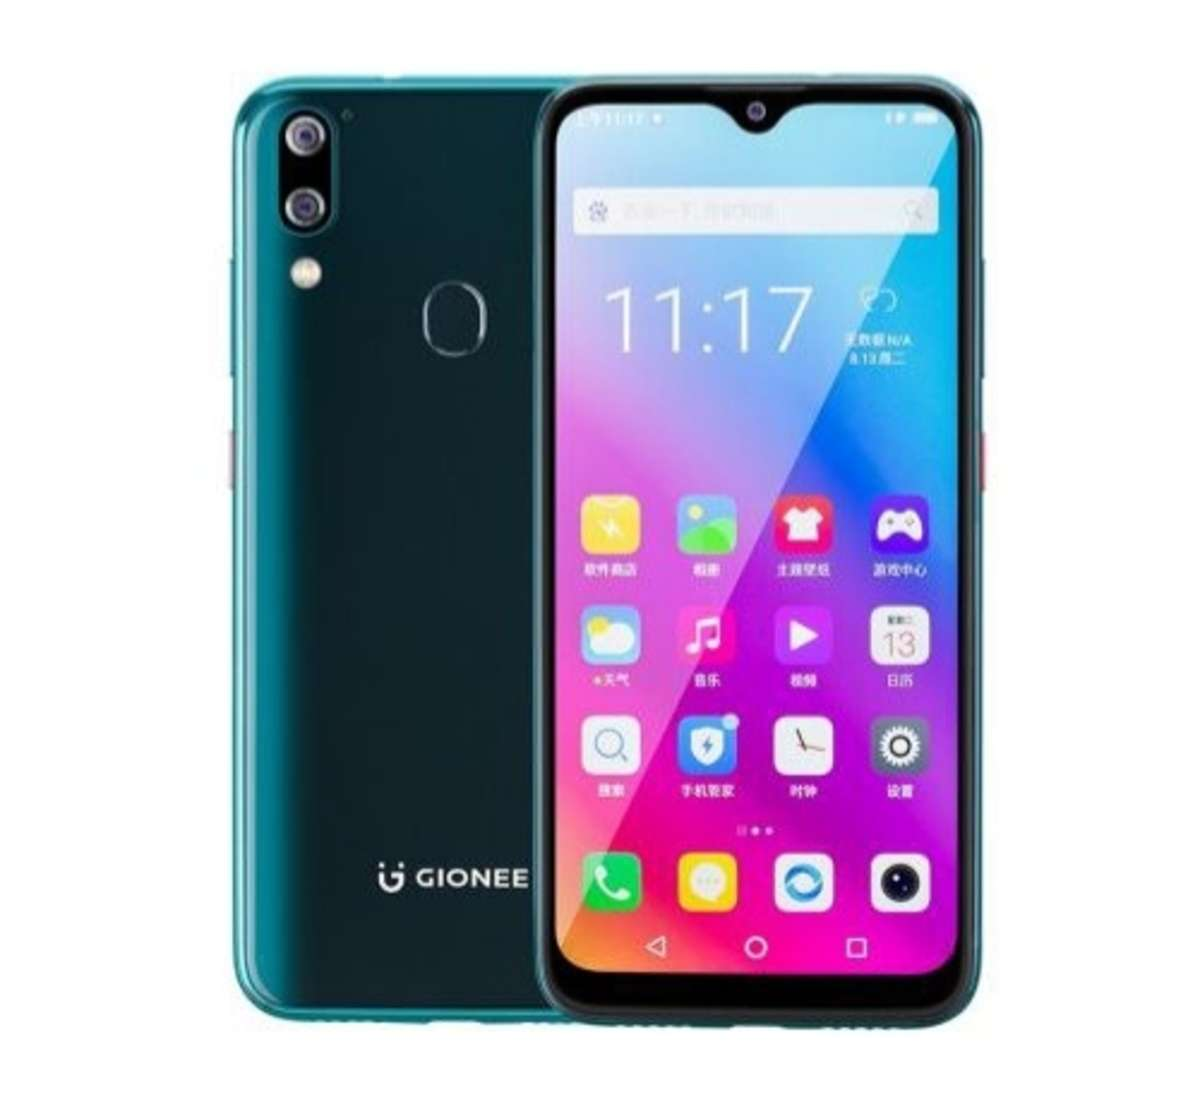 Gionee M11/M11 Pro, gionee M11, Gionee M11pro, gionee M11/M11 pro price in Nigeria, what is the price of gionee m11 pro in Nigeria, how much is gionee m11/m11 pro in Nigeria, price of gionee m11/m11 pro in Nigeria, gionee m11 pro specs, gionee m11 specs, gionee m11/m11pro price, gionee m11/m11 pro specs and price in Nigeria